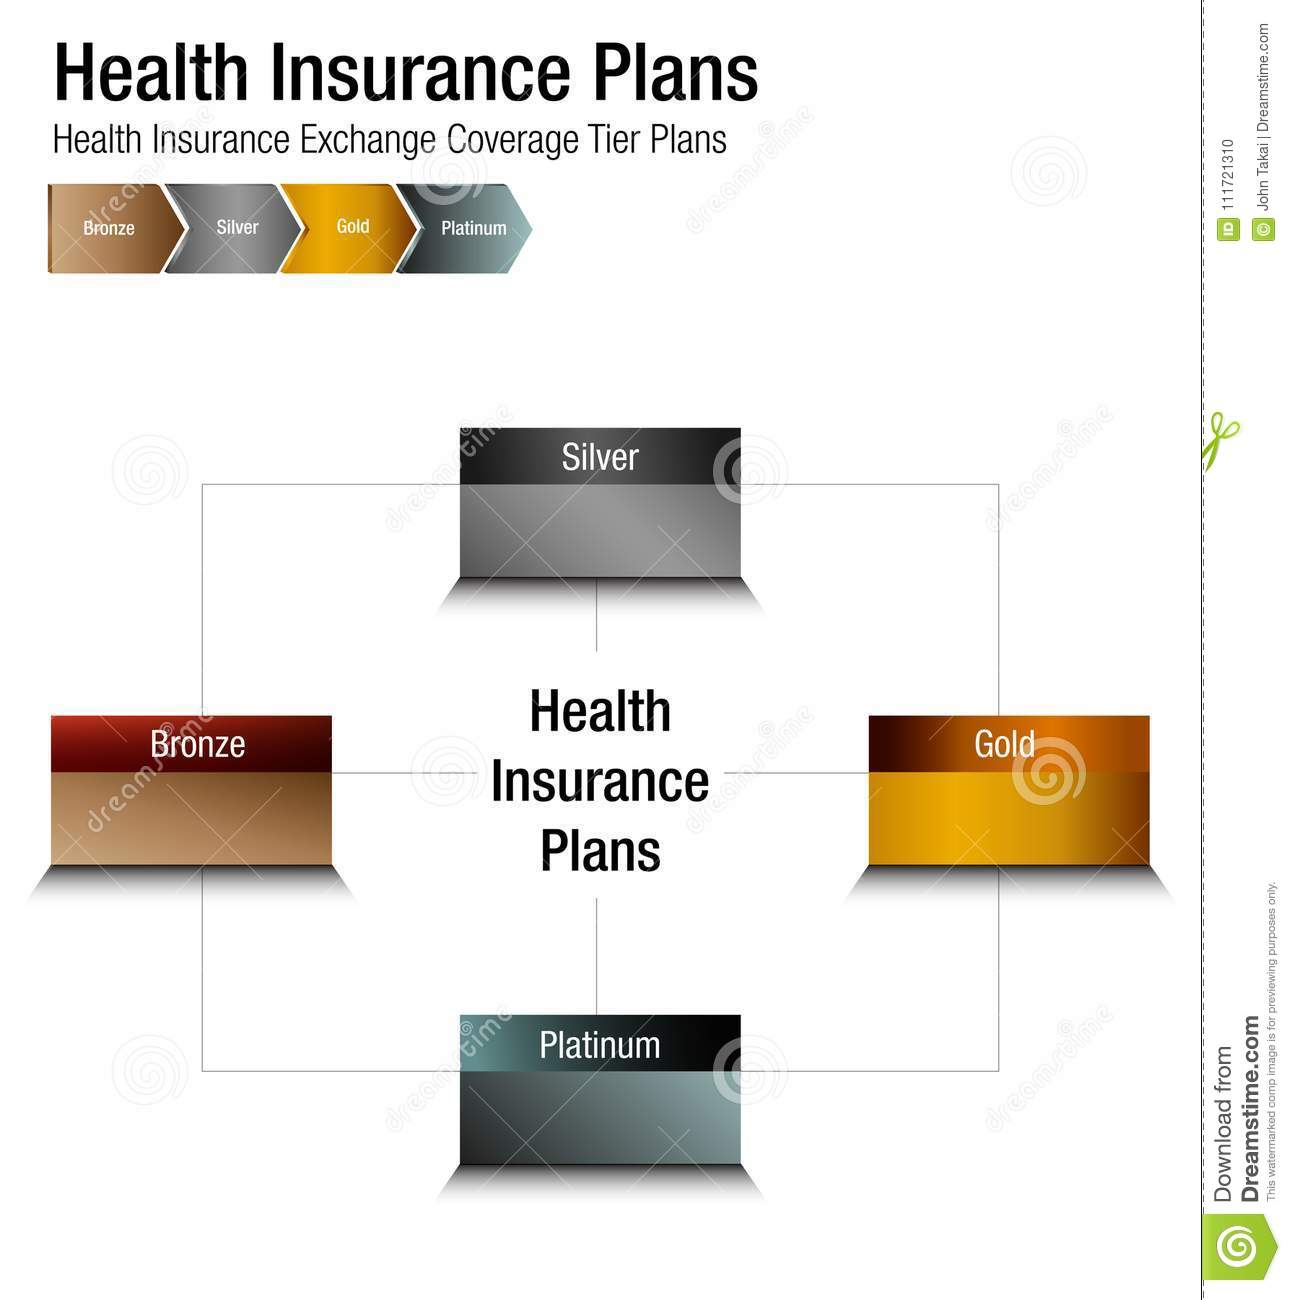 hight resolution of an image of a health insurance exchange coverage tier plans chart